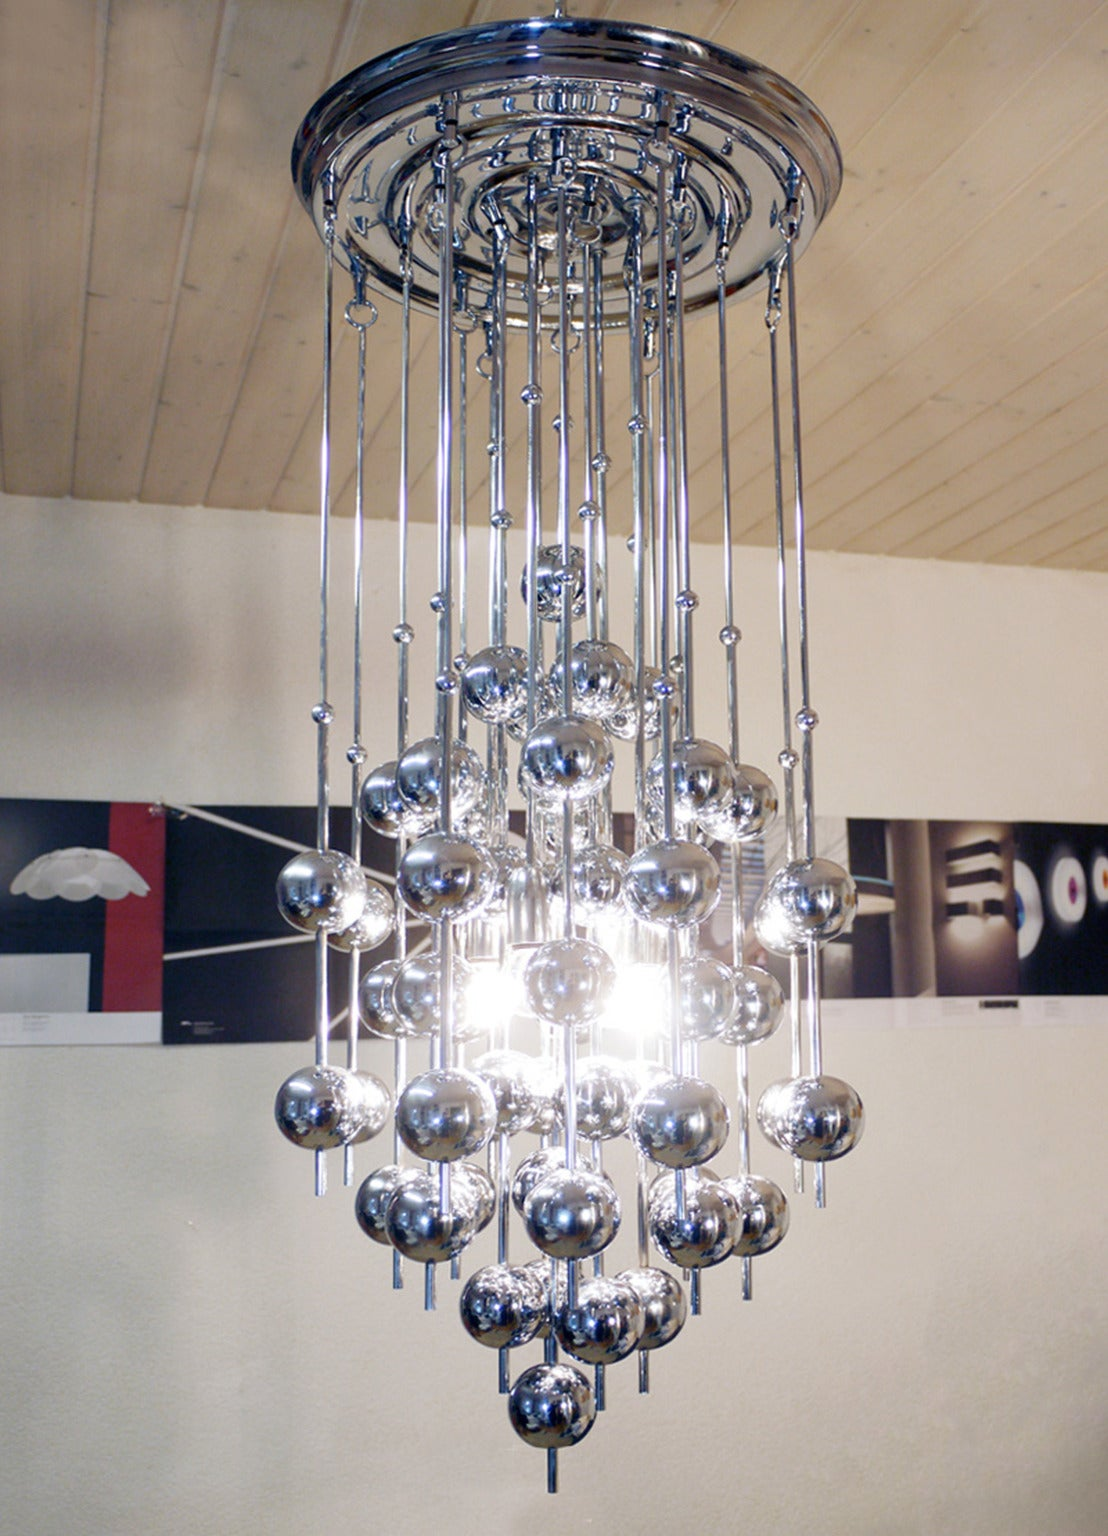 Verner Panton for J. Lüber, a 'Ball' chandelier, designed 1970 formed from a series of chromed metal balls suspended from steel rods.